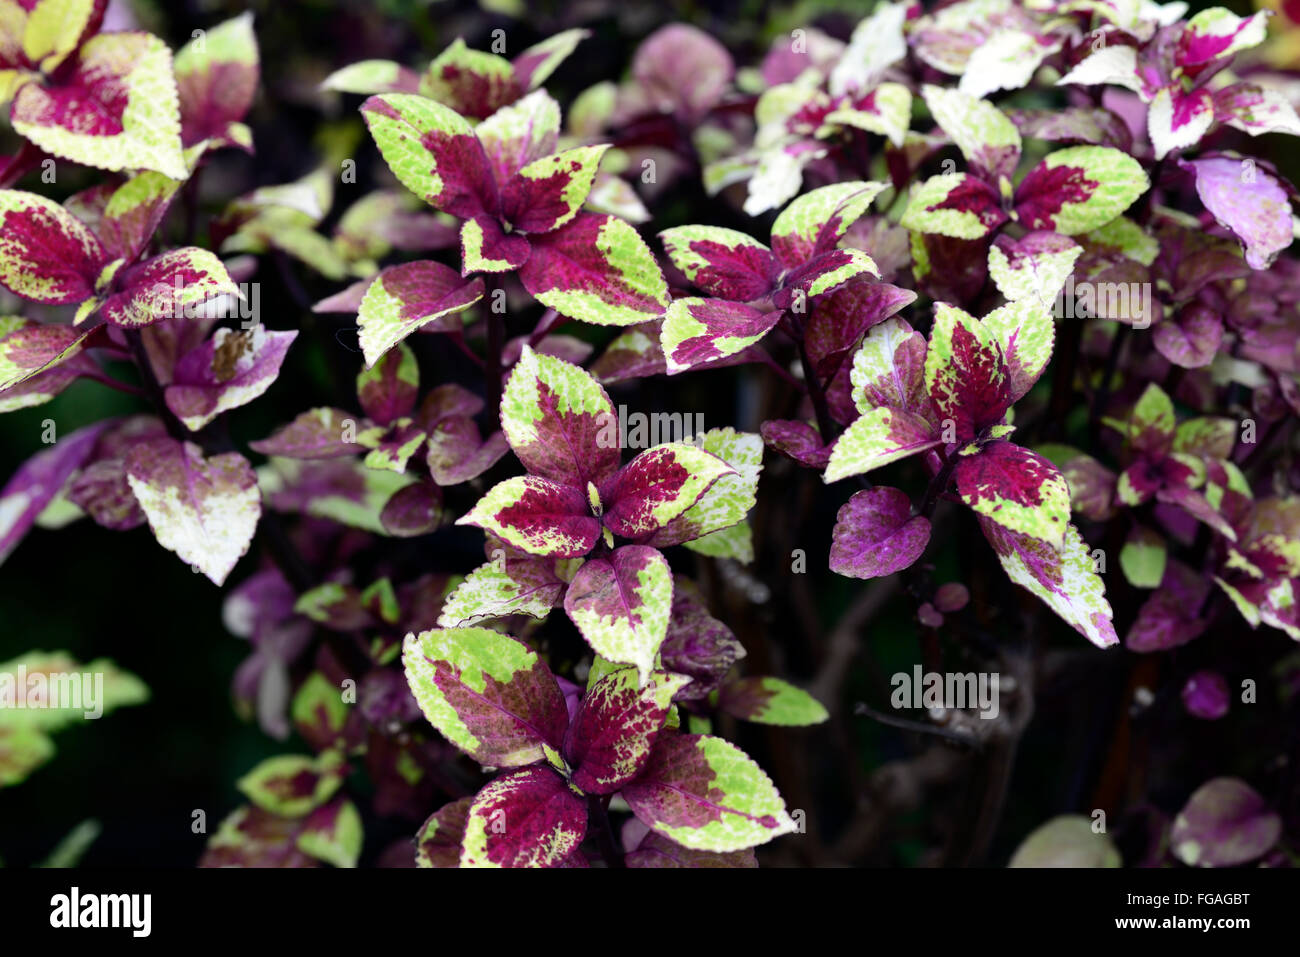 Coleus Melody yellow purple Coleus blumei Solenostemon scutellarioides ornamental plant foliage leaves variegated - Stock Image